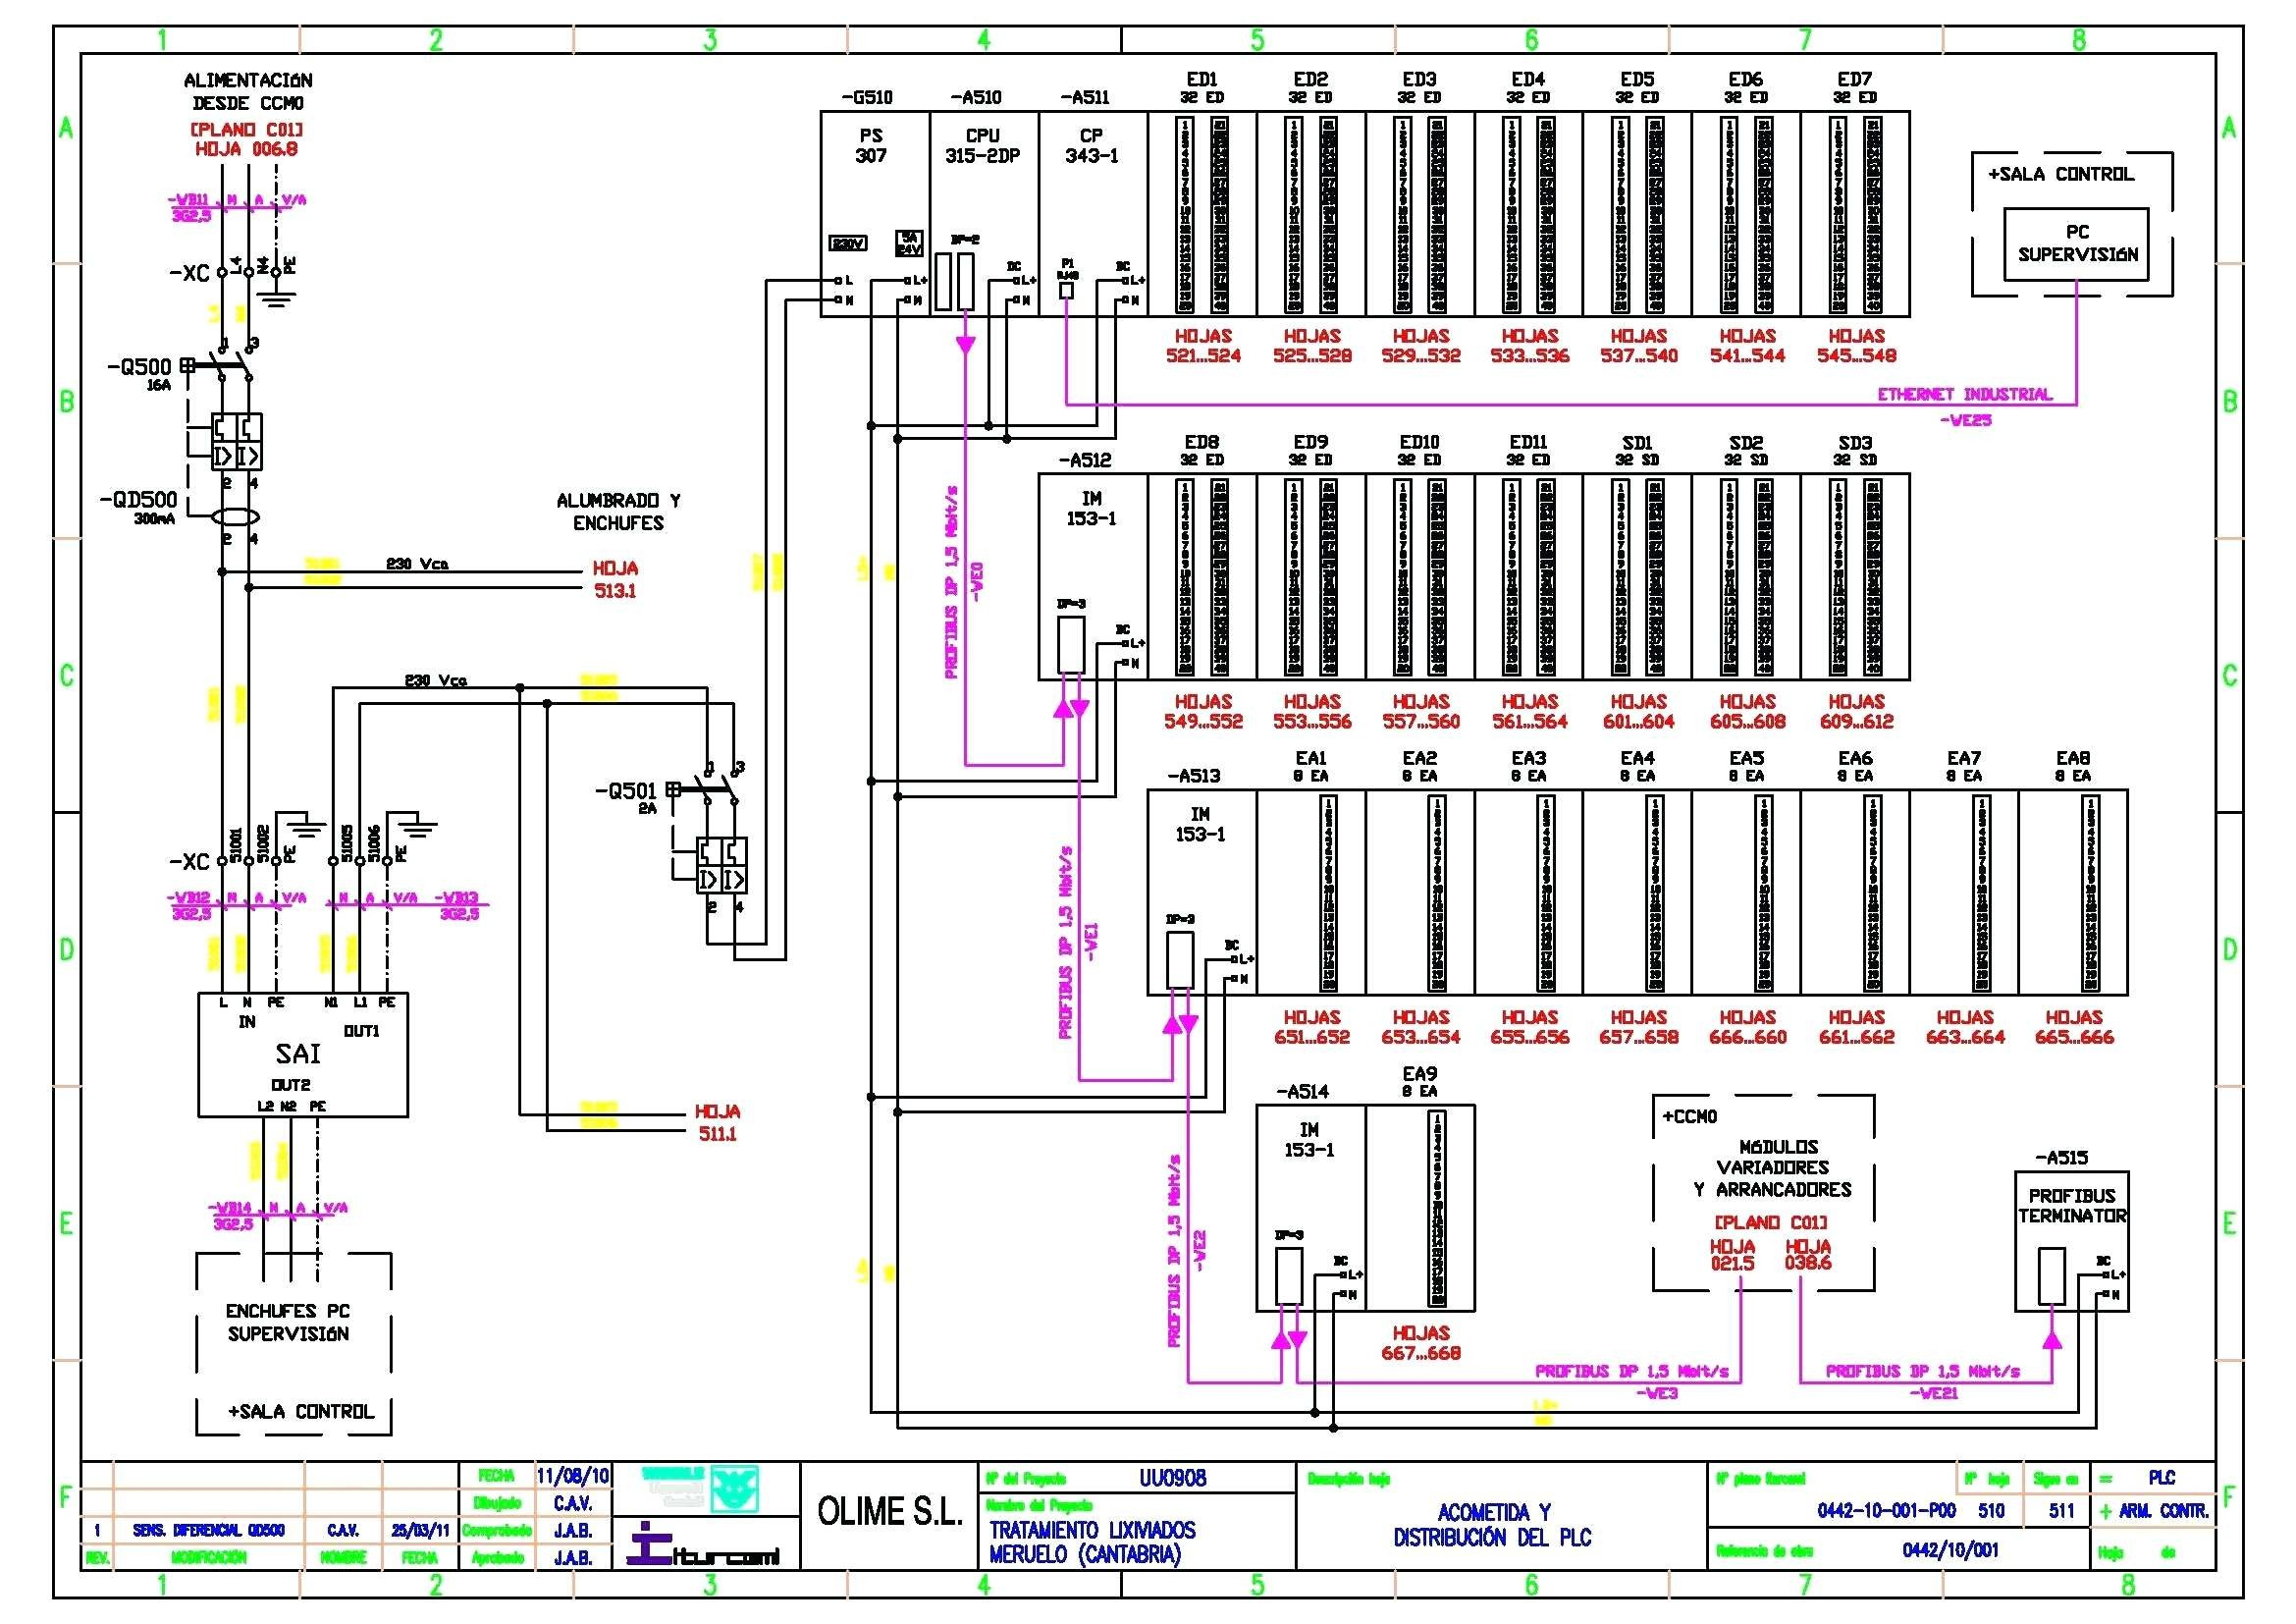 rv distribution panel wiring diagram Download-Wiring Diagram Distribution Board New Rv Distribution Panel Wiring Diagram How to Wire Safety Switch 5-l